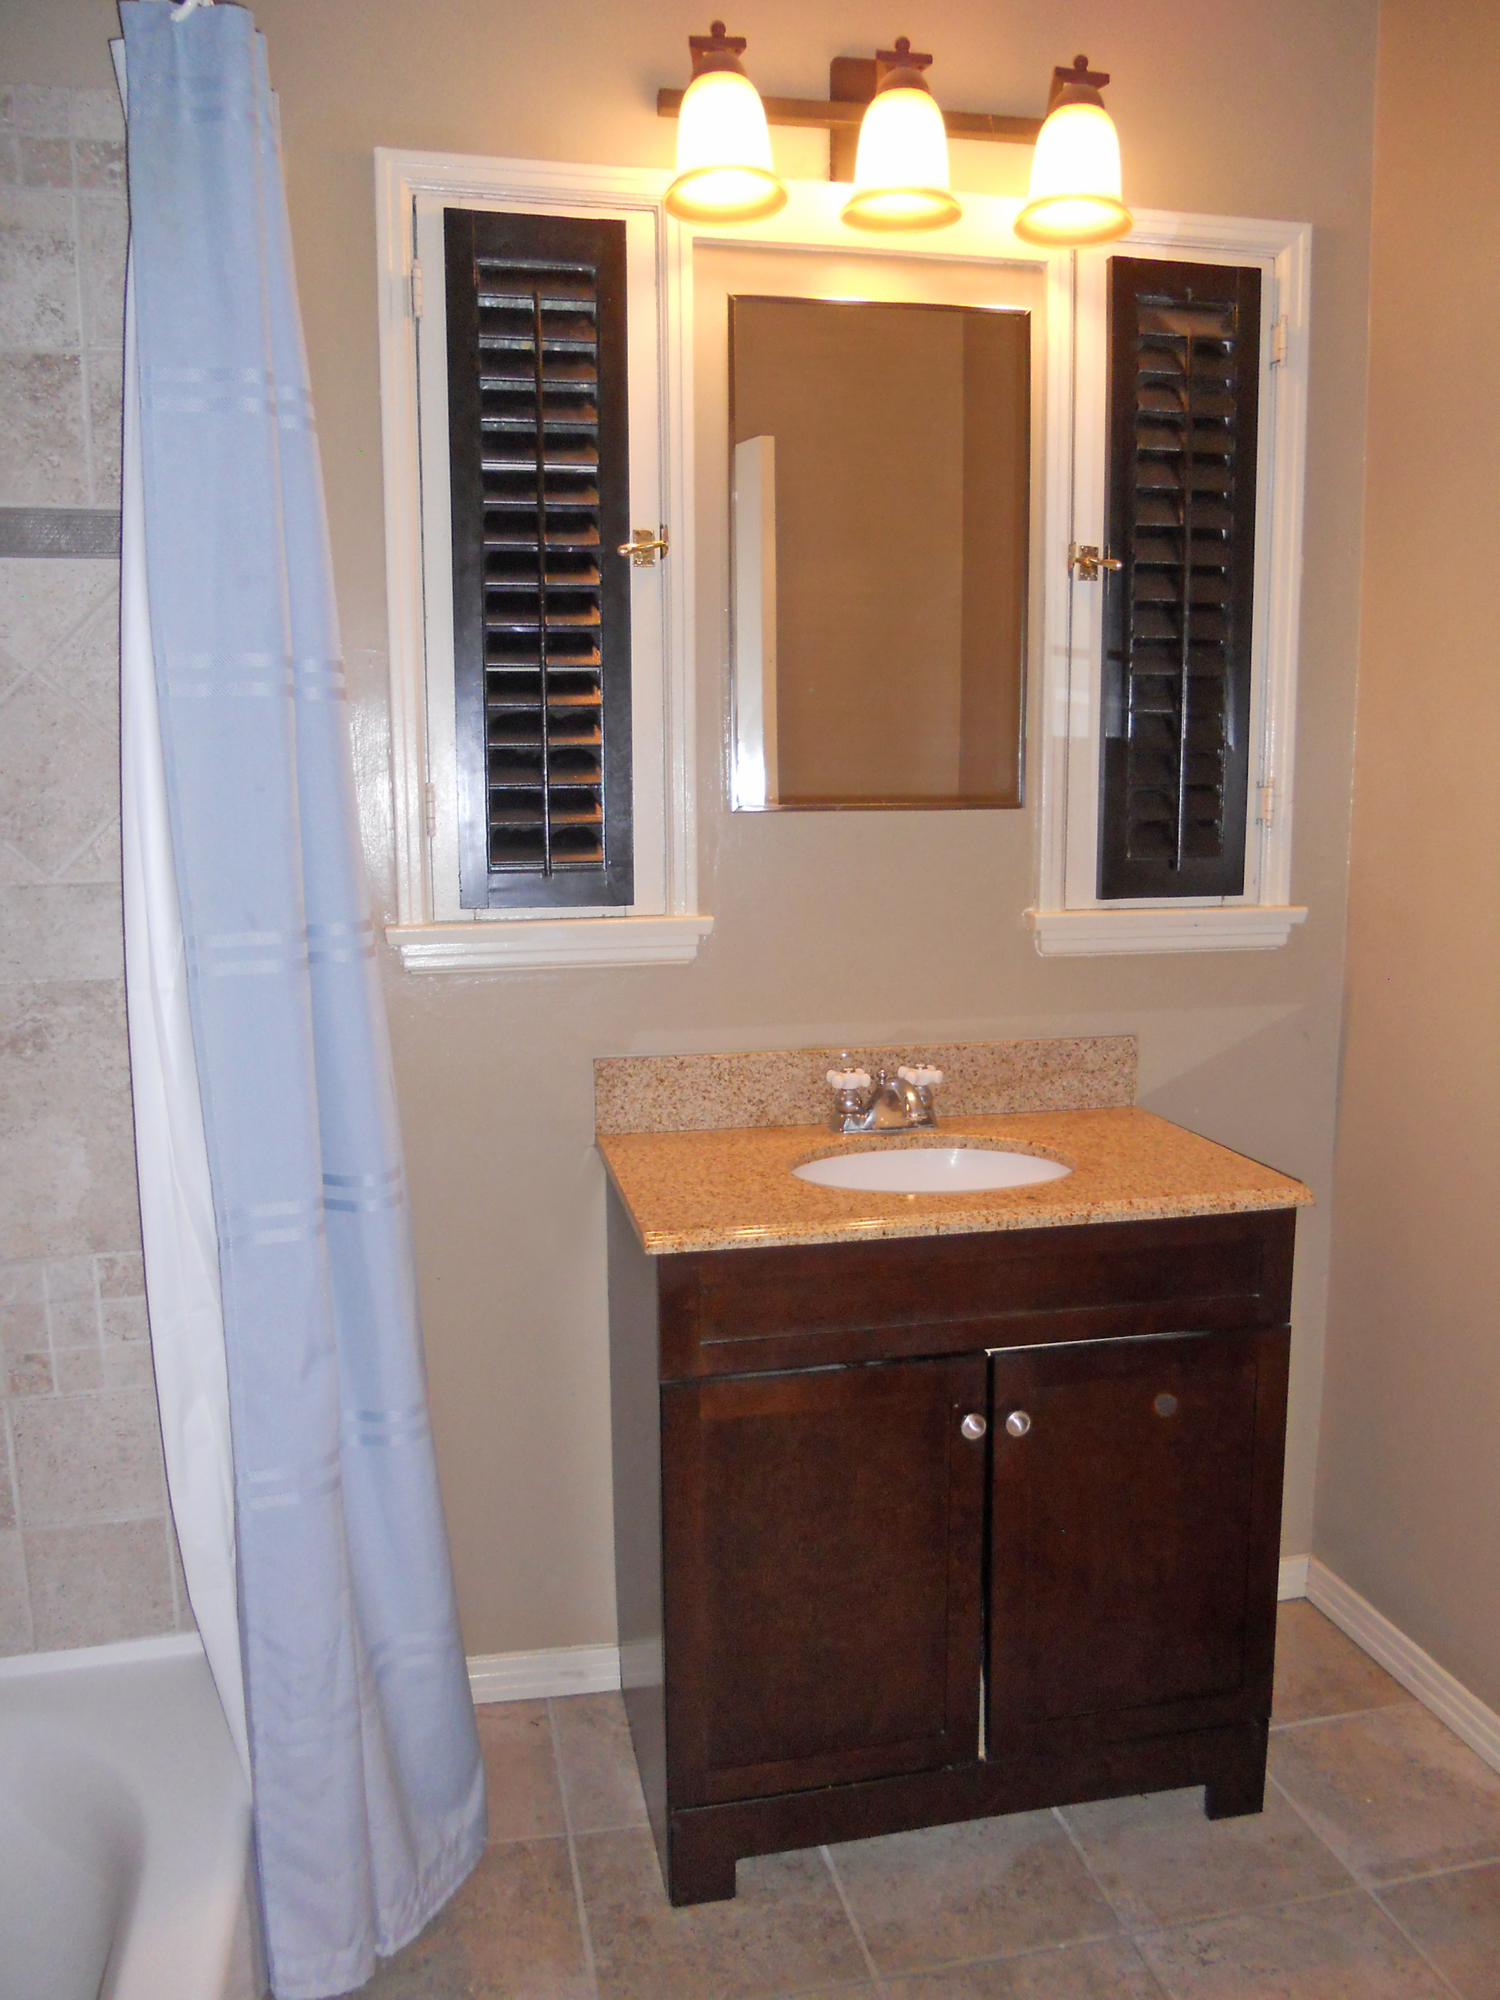 Inspirational Remodeled hall bathroom with tile floor new vanity new toilet new tub